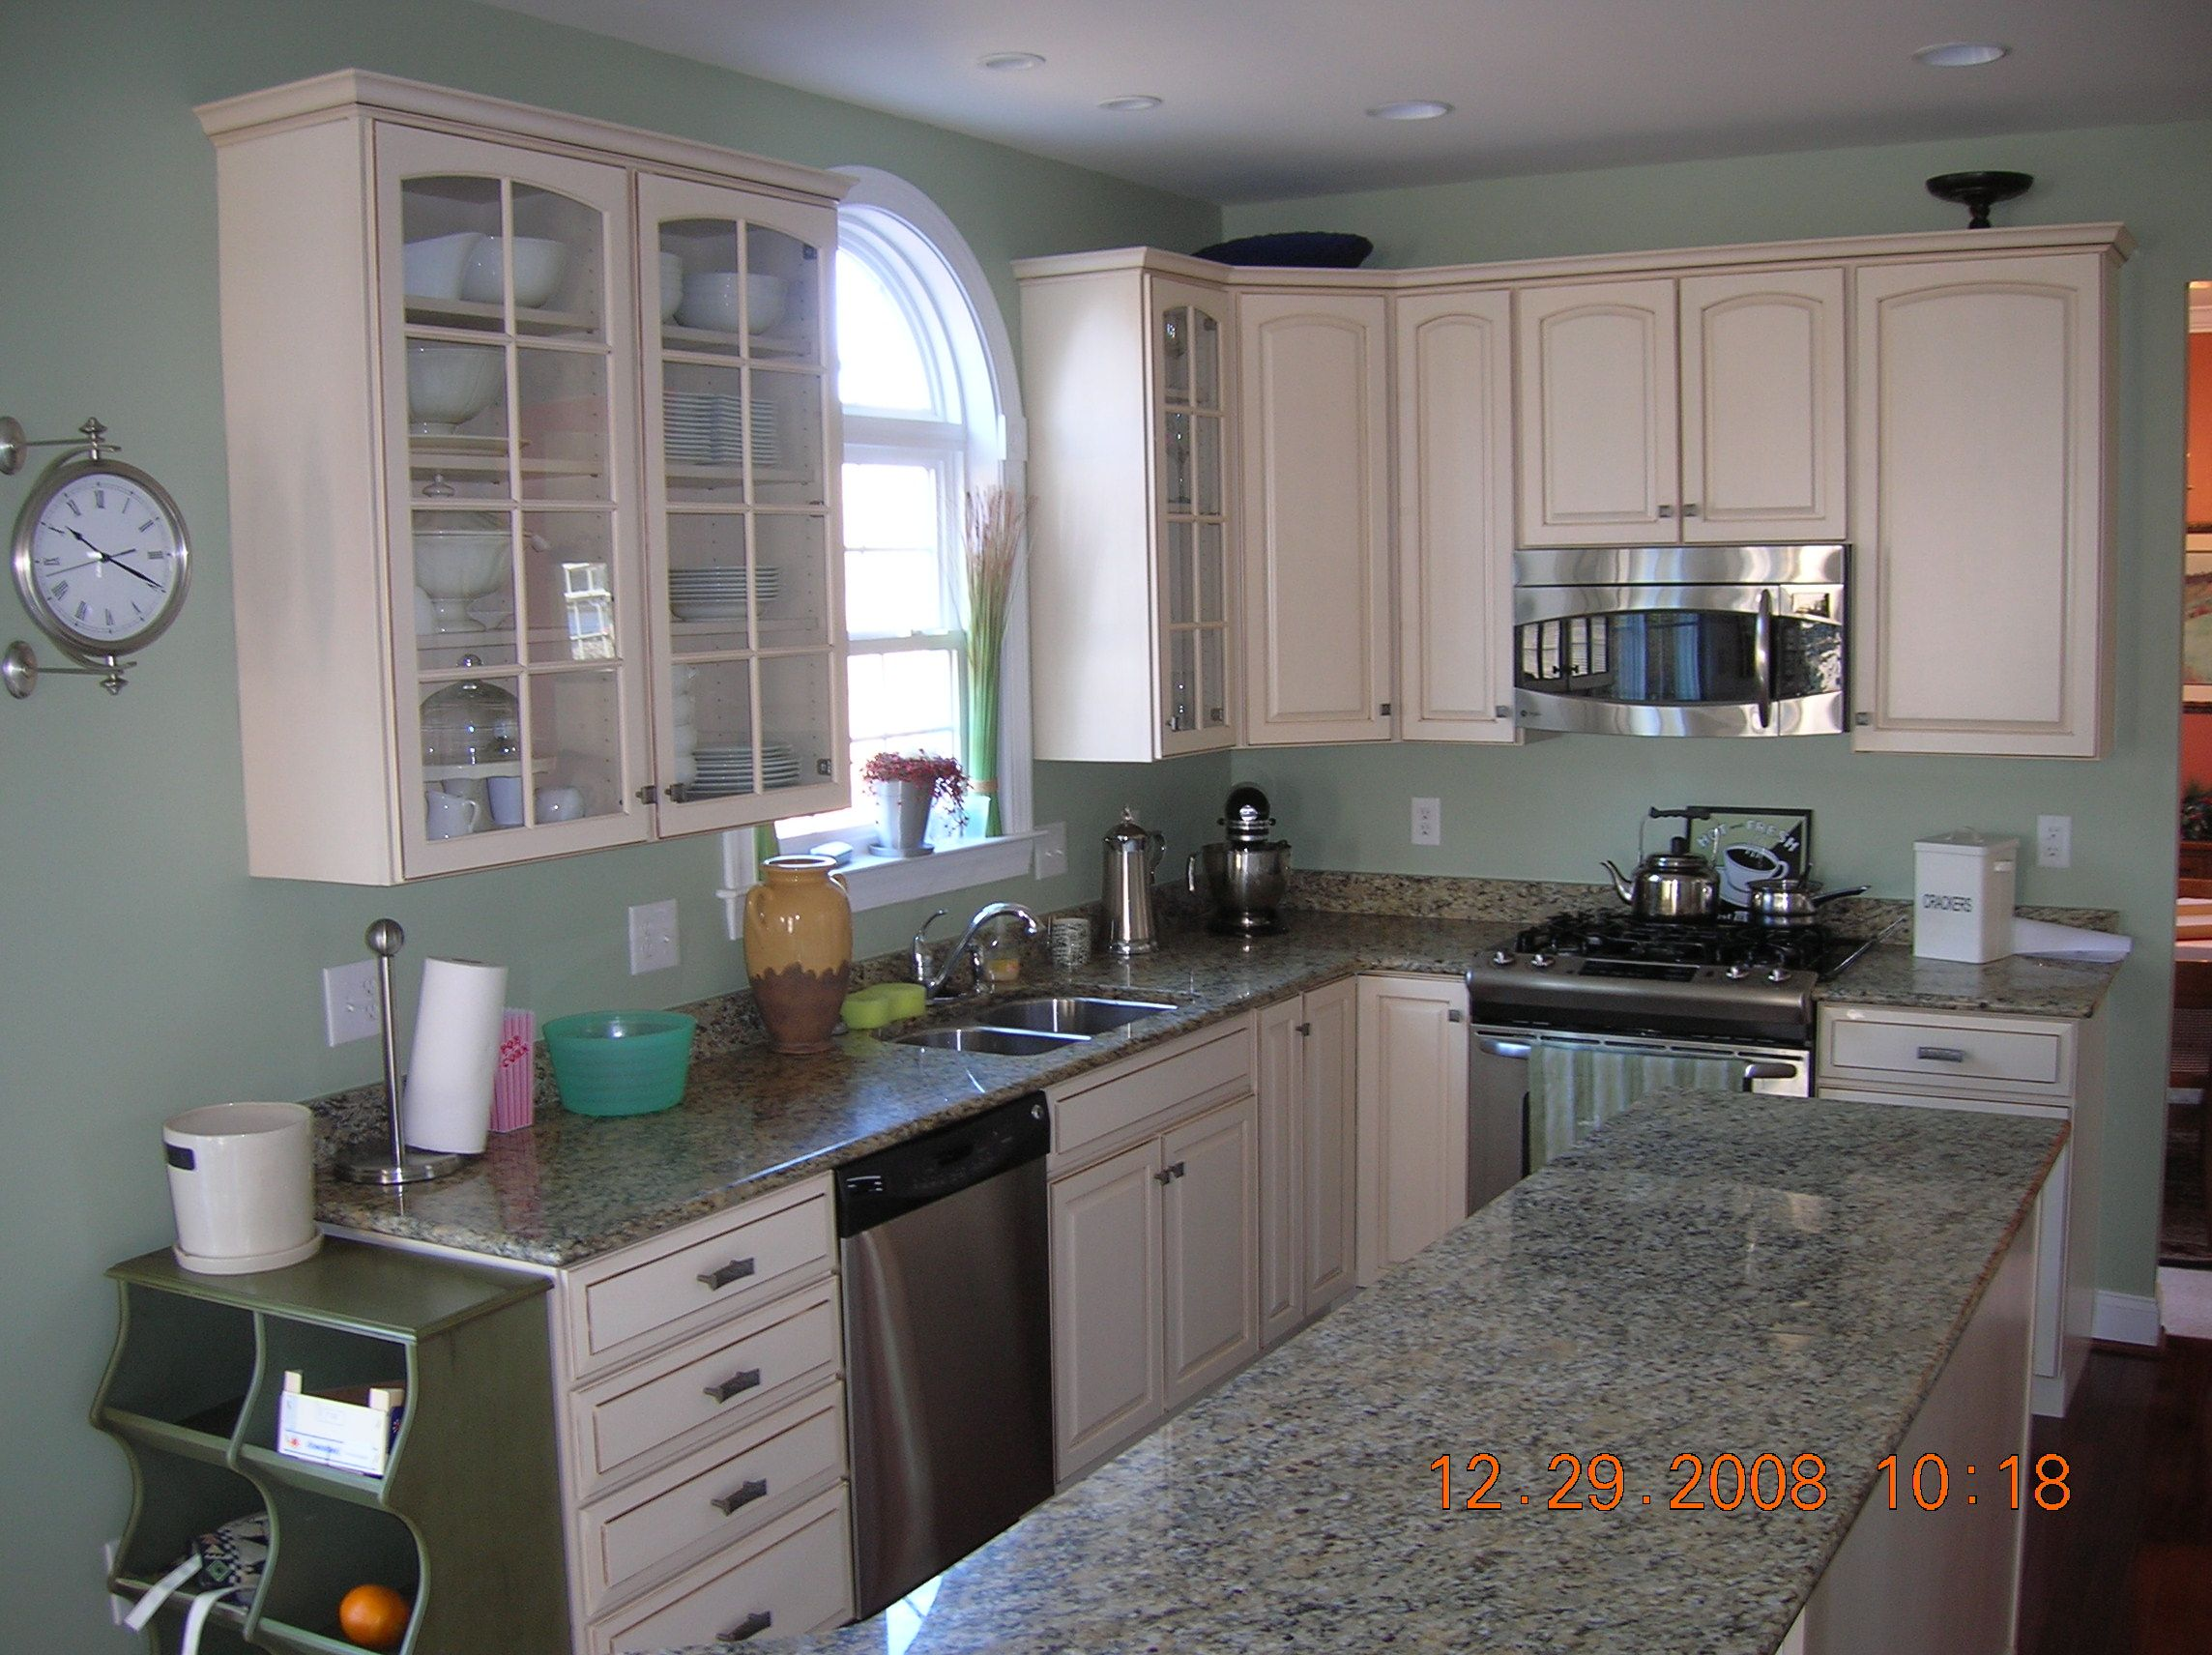 sherwin williams softened green great color for kitchen home style paint colors. Black Bedroom Furniture Sets. Home Design Ideas